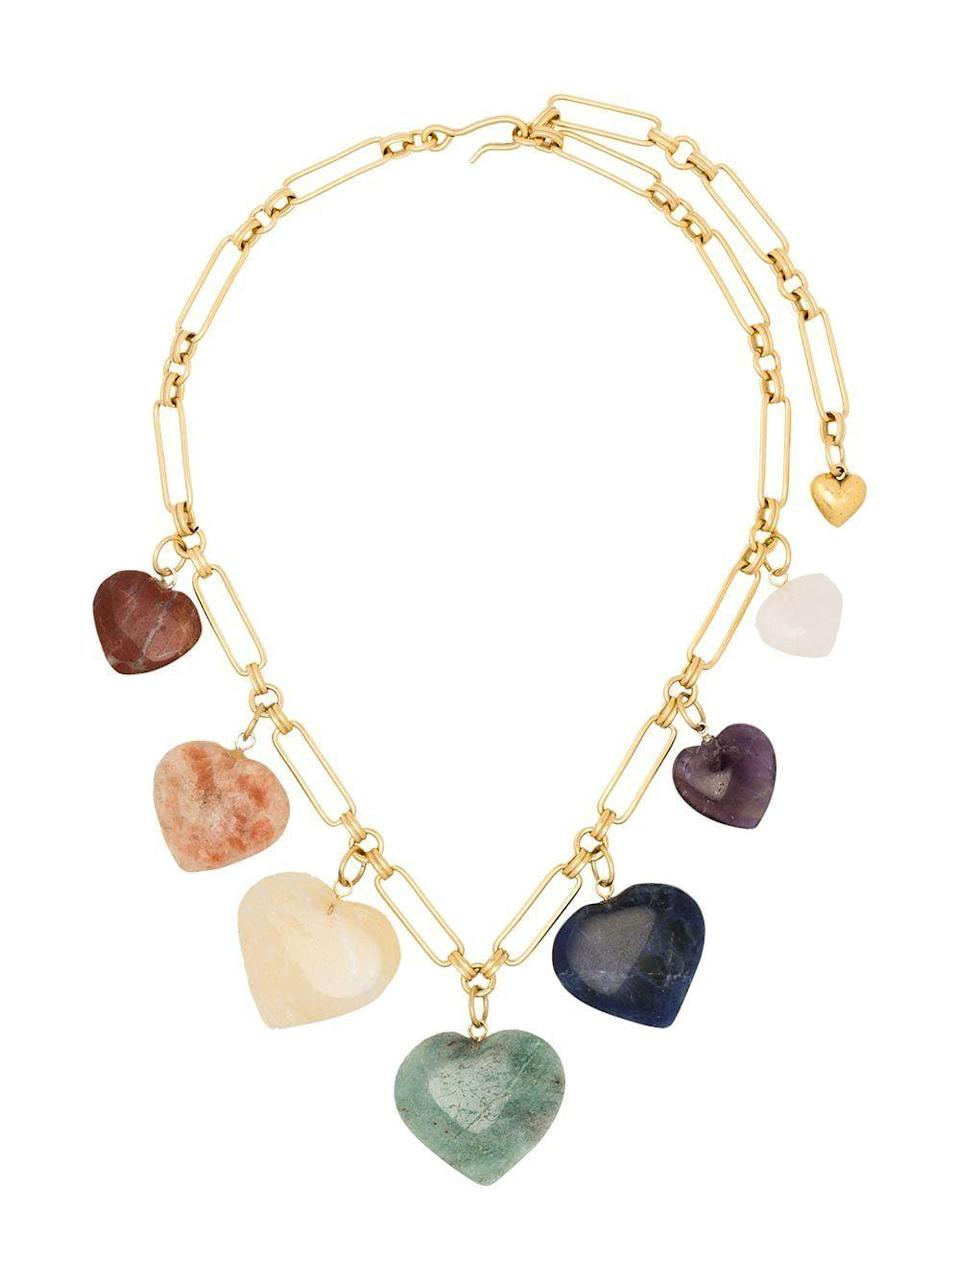 """<p><strong>Brinker and Eliza</strong></p><p>brinkerandeliza.com</p><p><strong>$238.00</strong></p><p><a href=""""https://brinkerandeliza.com/collections/all/products/carpe-diem-necklace"""" rel=""""nofollow noopener"""" target=""""_blank"""" data-ylk=""""slk:SHOP IT"""" class=""""link rapid-noclick-resp"""">SHOP IT</a></p><p>Looking to add some color into the mix? Try this heart charm necklace in a mix of assorted stones from Brinker and Eliza. </p>"""